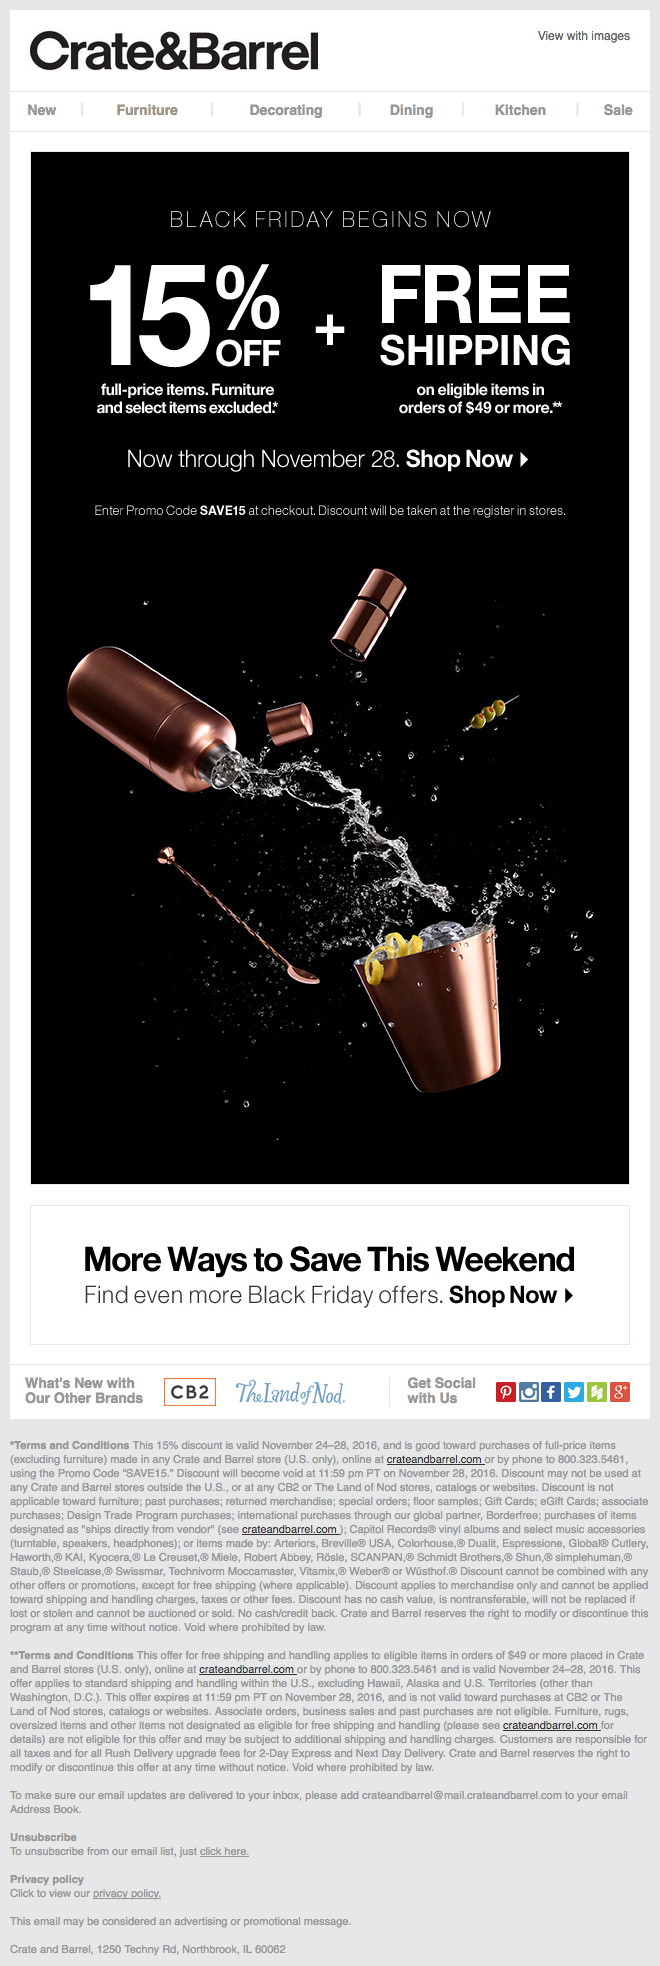 Crate and Barrel Black Friday Email